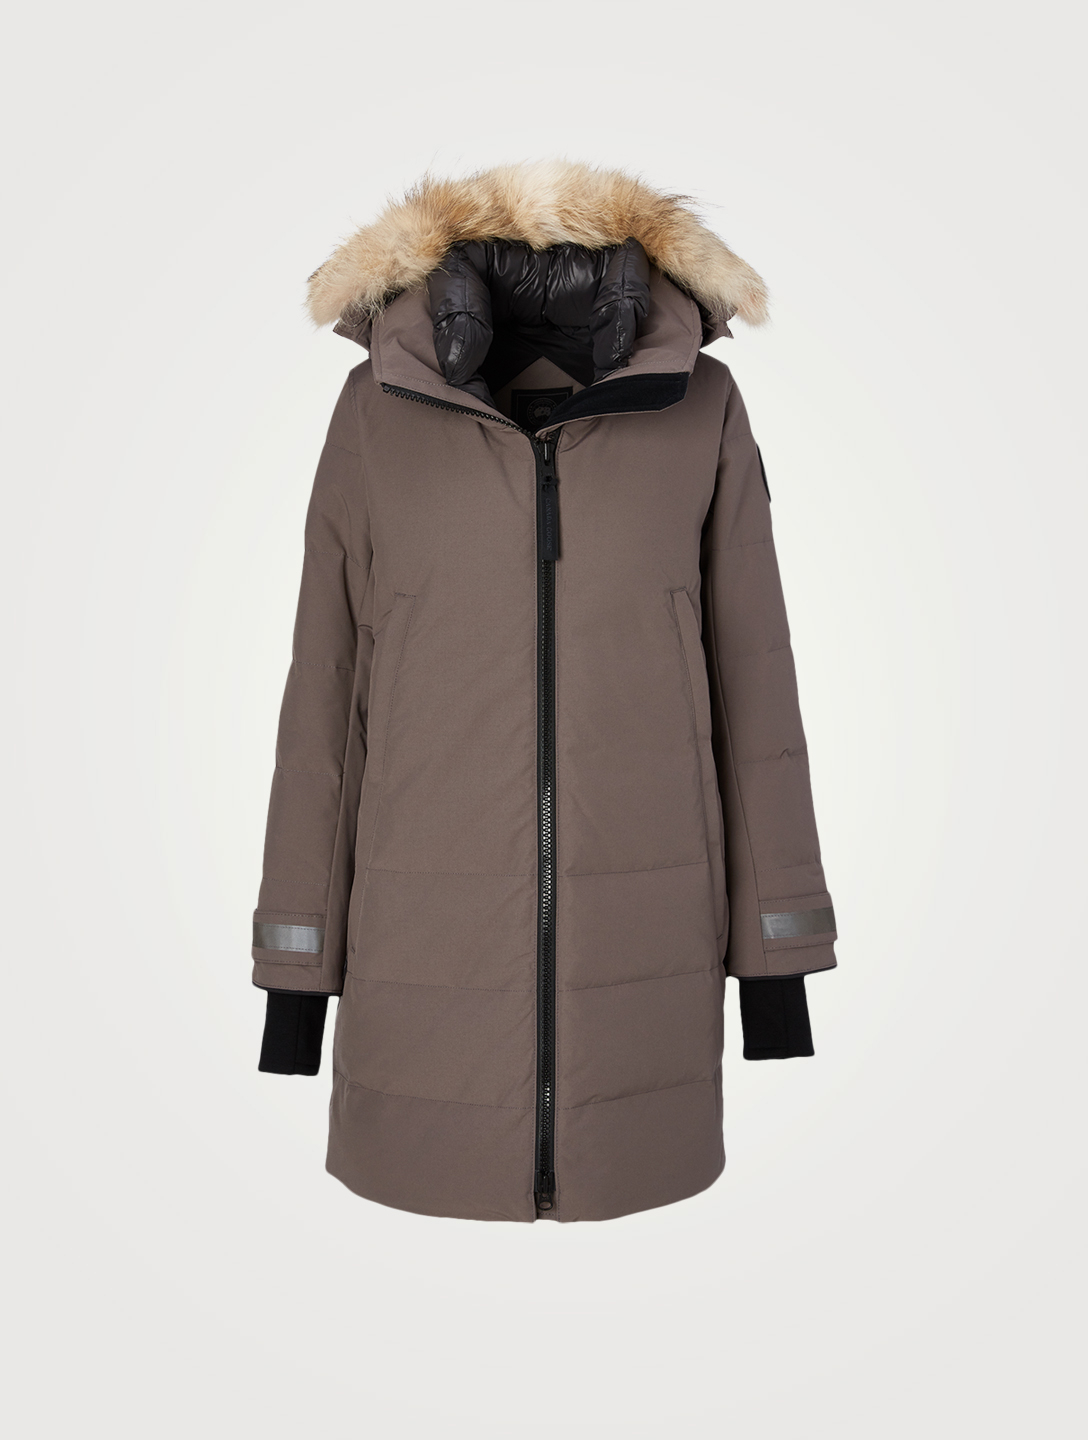 CANADA GOOSE Kenton Black Label Down Parka With Fur Hood Women's Grey